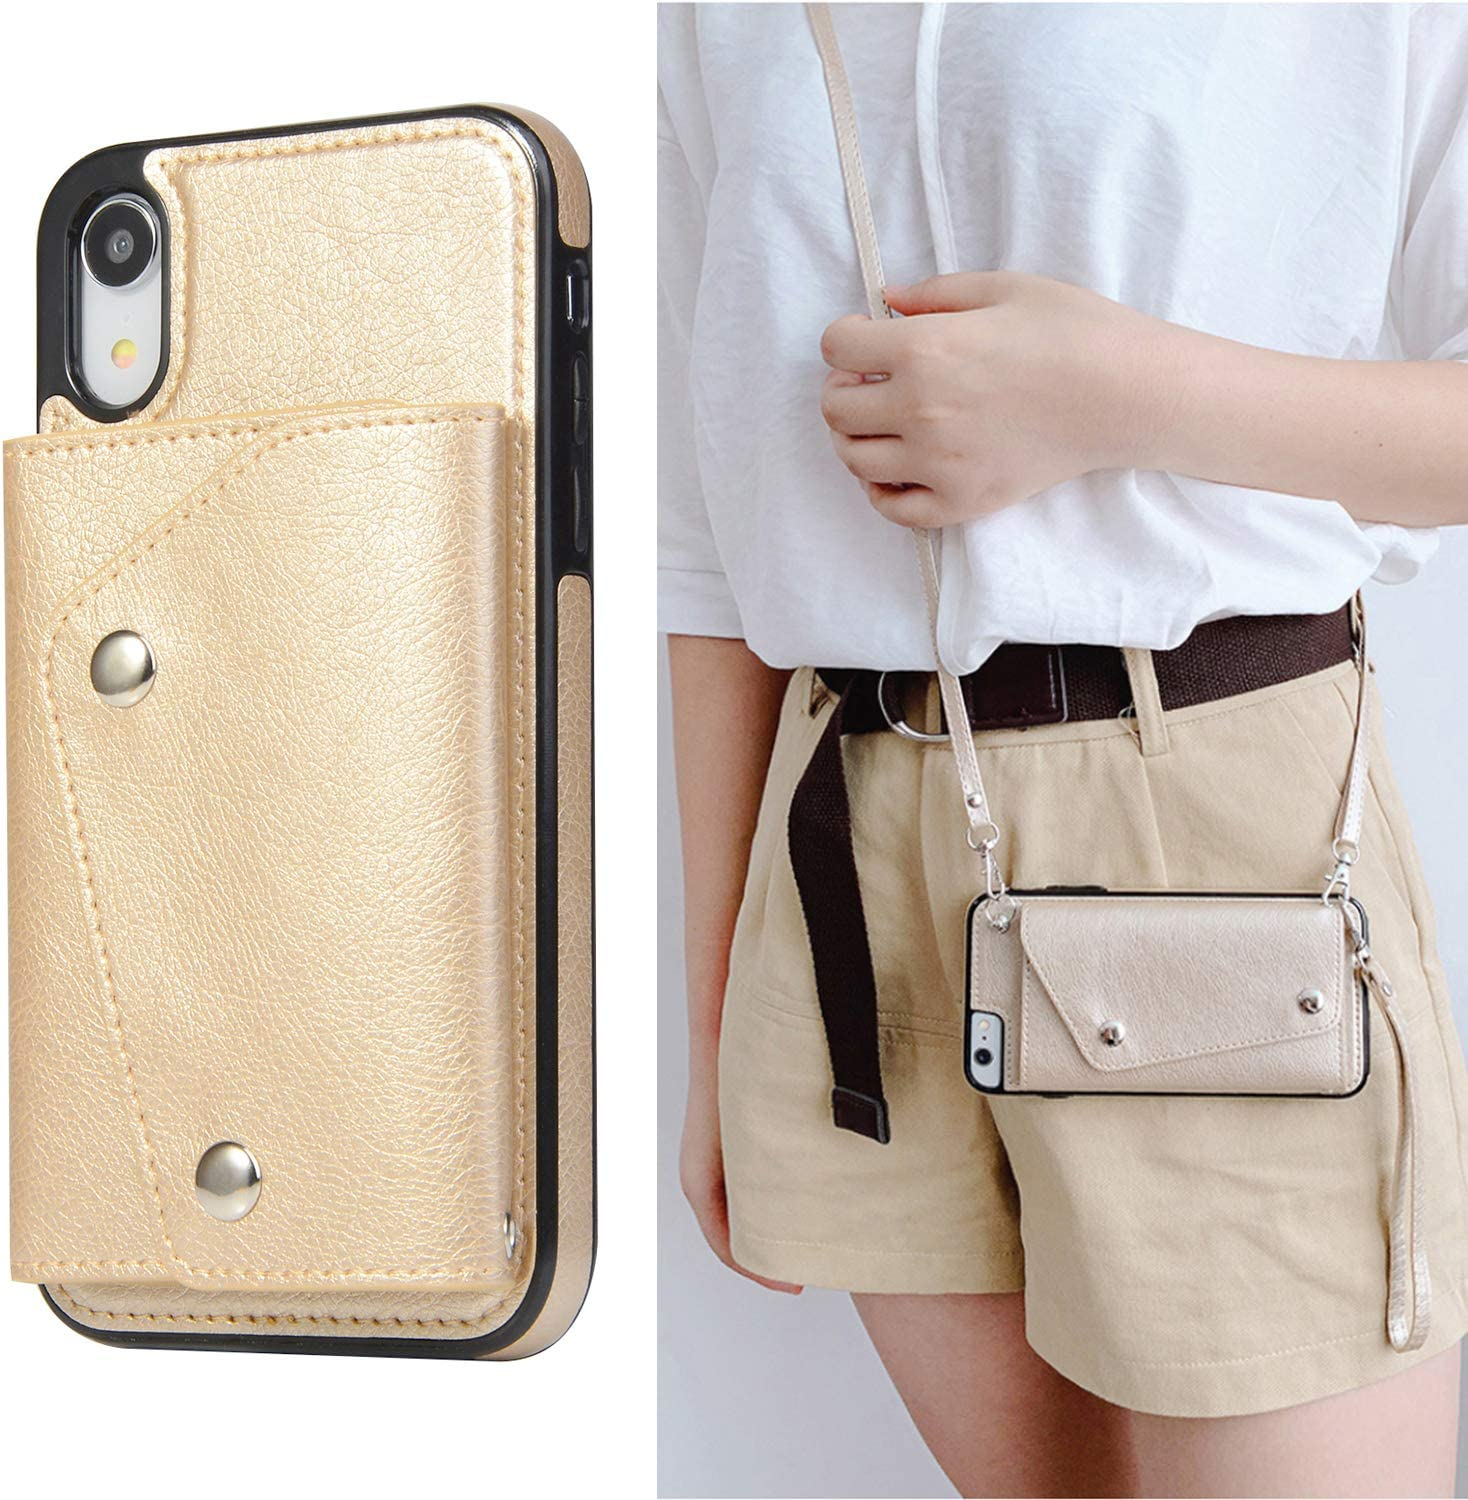 LUVI for iPhone XR Wallet Case with Crossbody Neck Strap Lanyard Handbag Hand Wrist Strap Protective Cover with Credit ID Card Holder Slot PU Leather Case for iPhone XR Gold